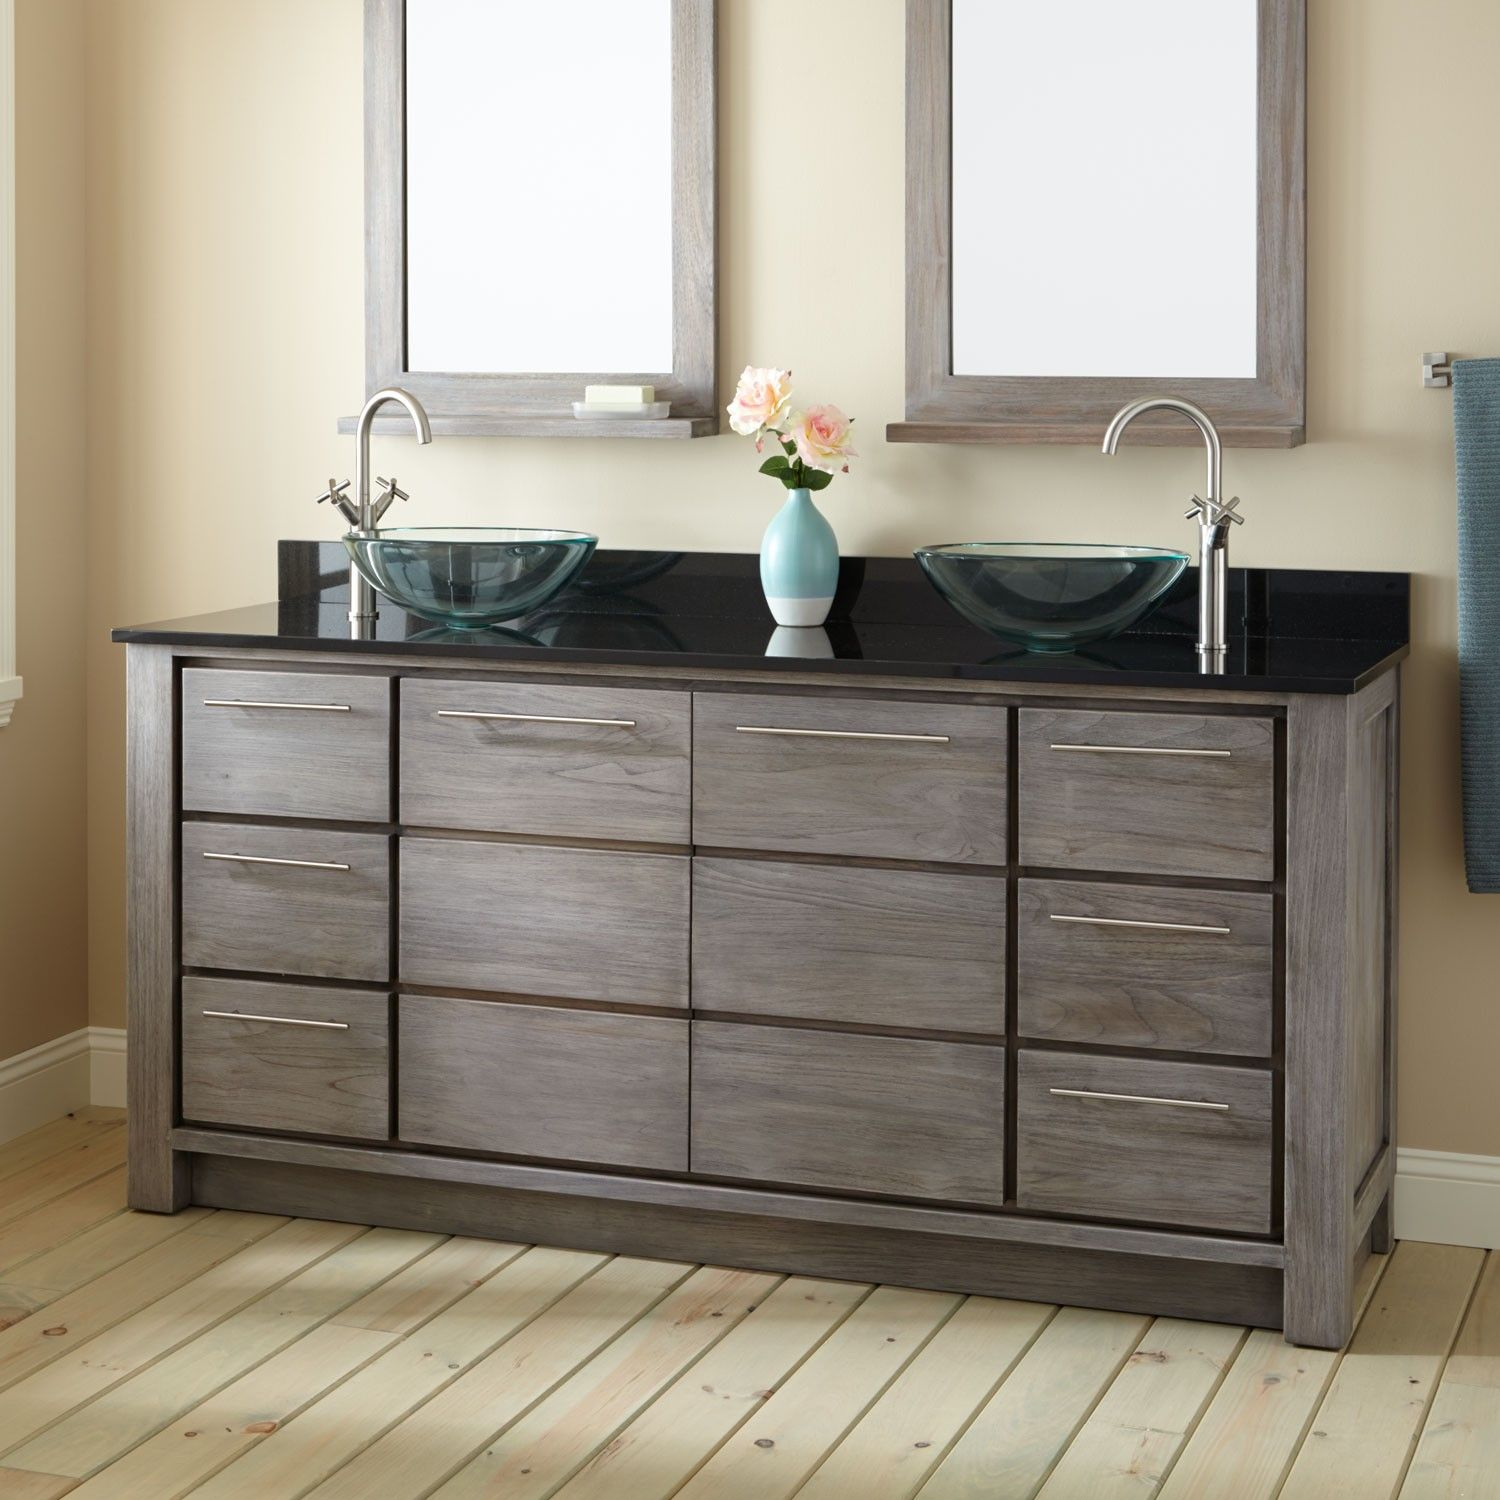 72 venica teak double vessel sinks vanity gray wash bathroom rustic modern bathroom - Modern bathroom vanity double sink ...